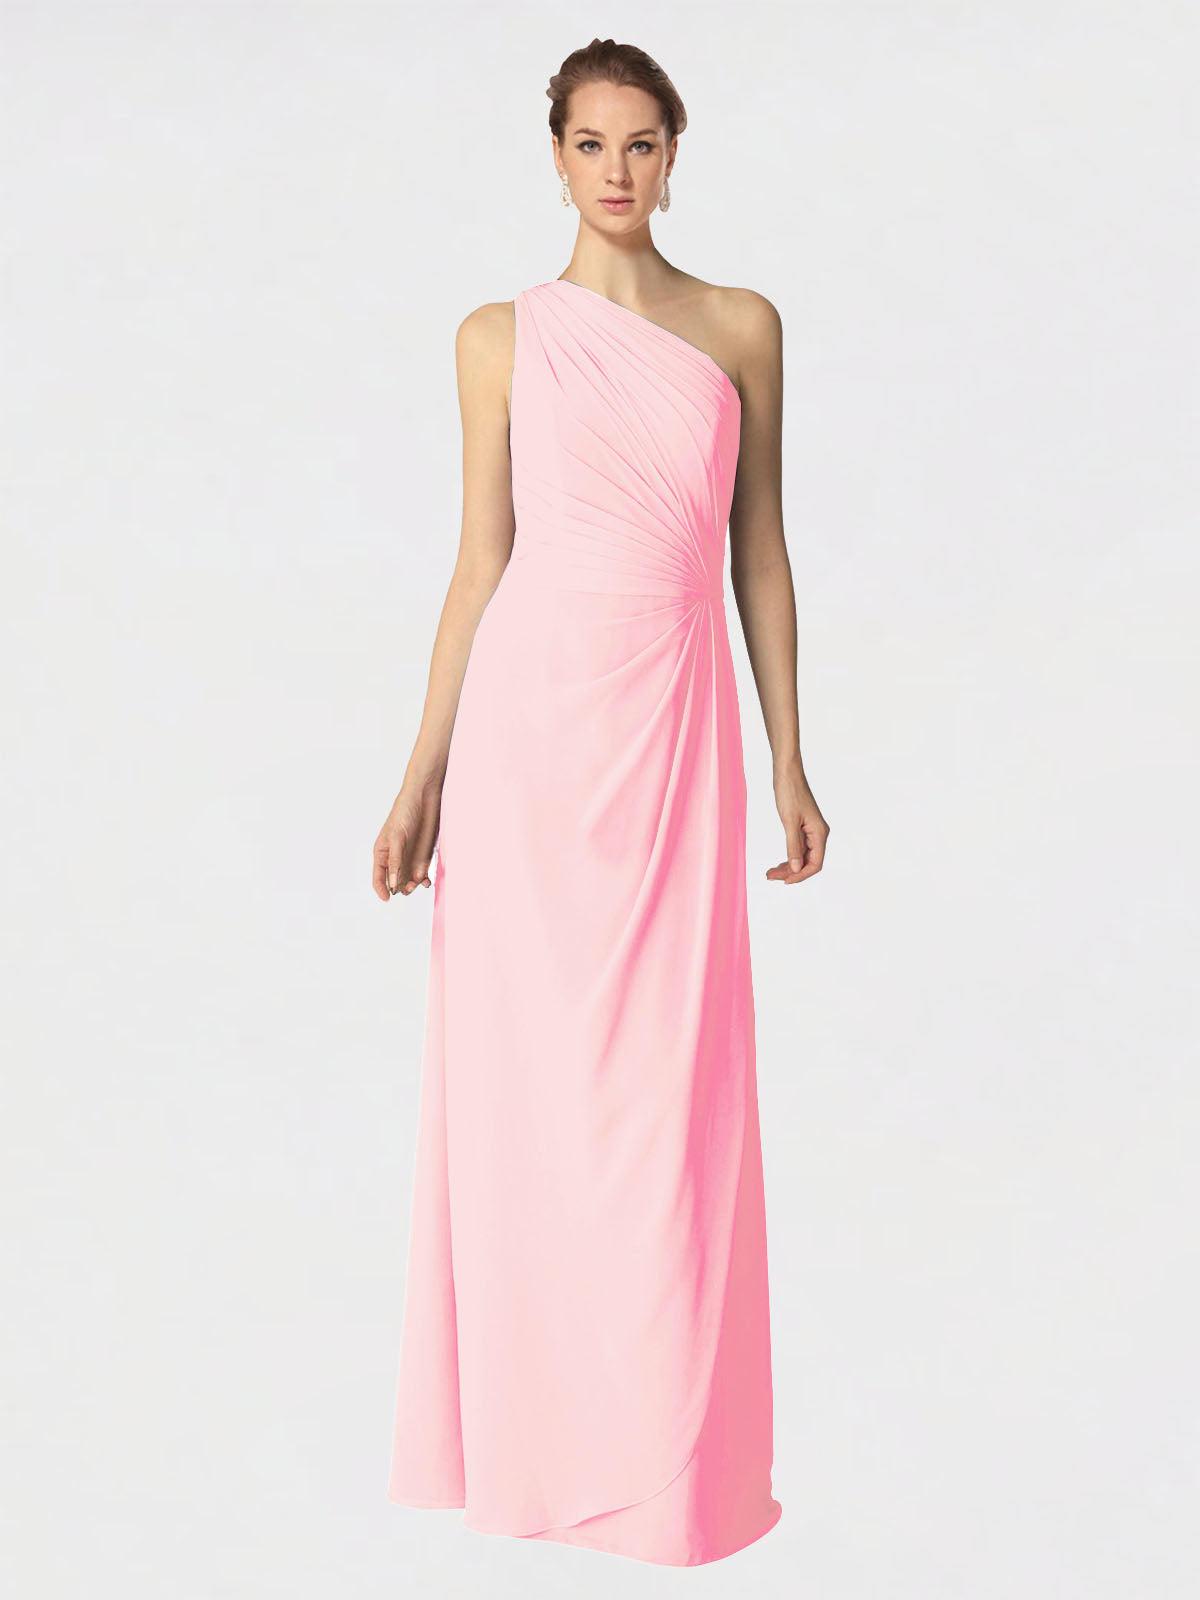 Long A-Line One Shoulder Sleeveless Pink Chiffon Bridesmaid Dress Aurora